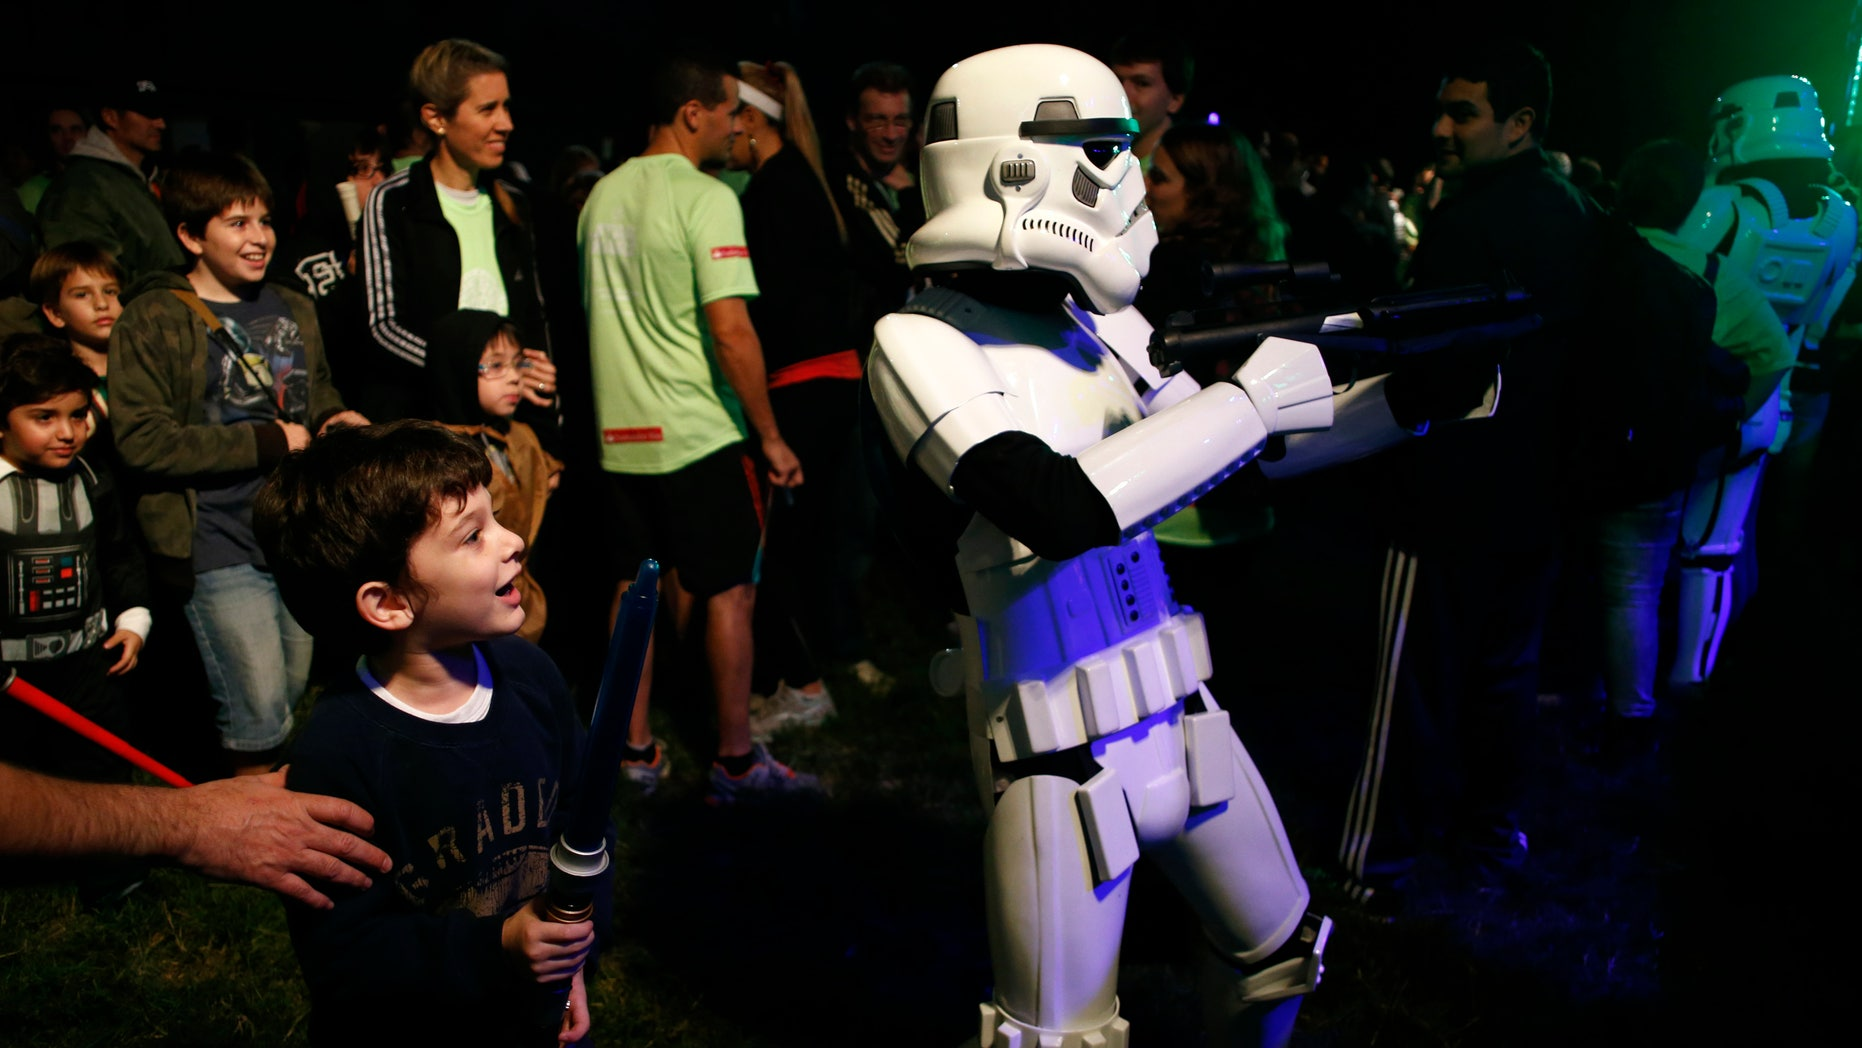 May 3, 2014. A boy looks at a man dressed as a stormtrooper from the Star Wars movies before the Star Wars Run race ahead of Star Wars Day in Buenos Aires.